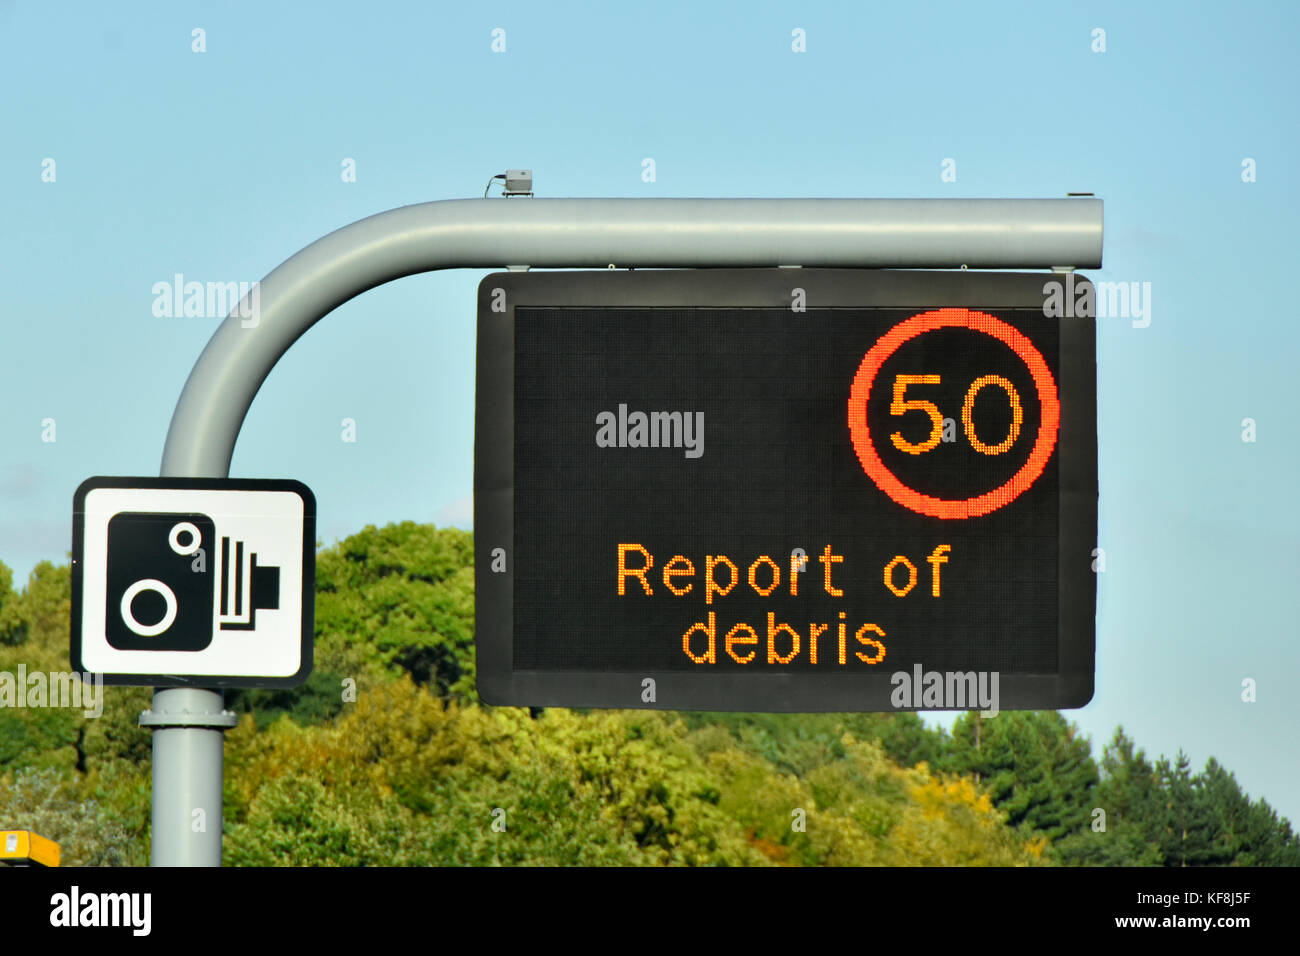 Single panel M25 motorway sign above lane one only, variable speed limit & short debris warning message complete - Stock Image